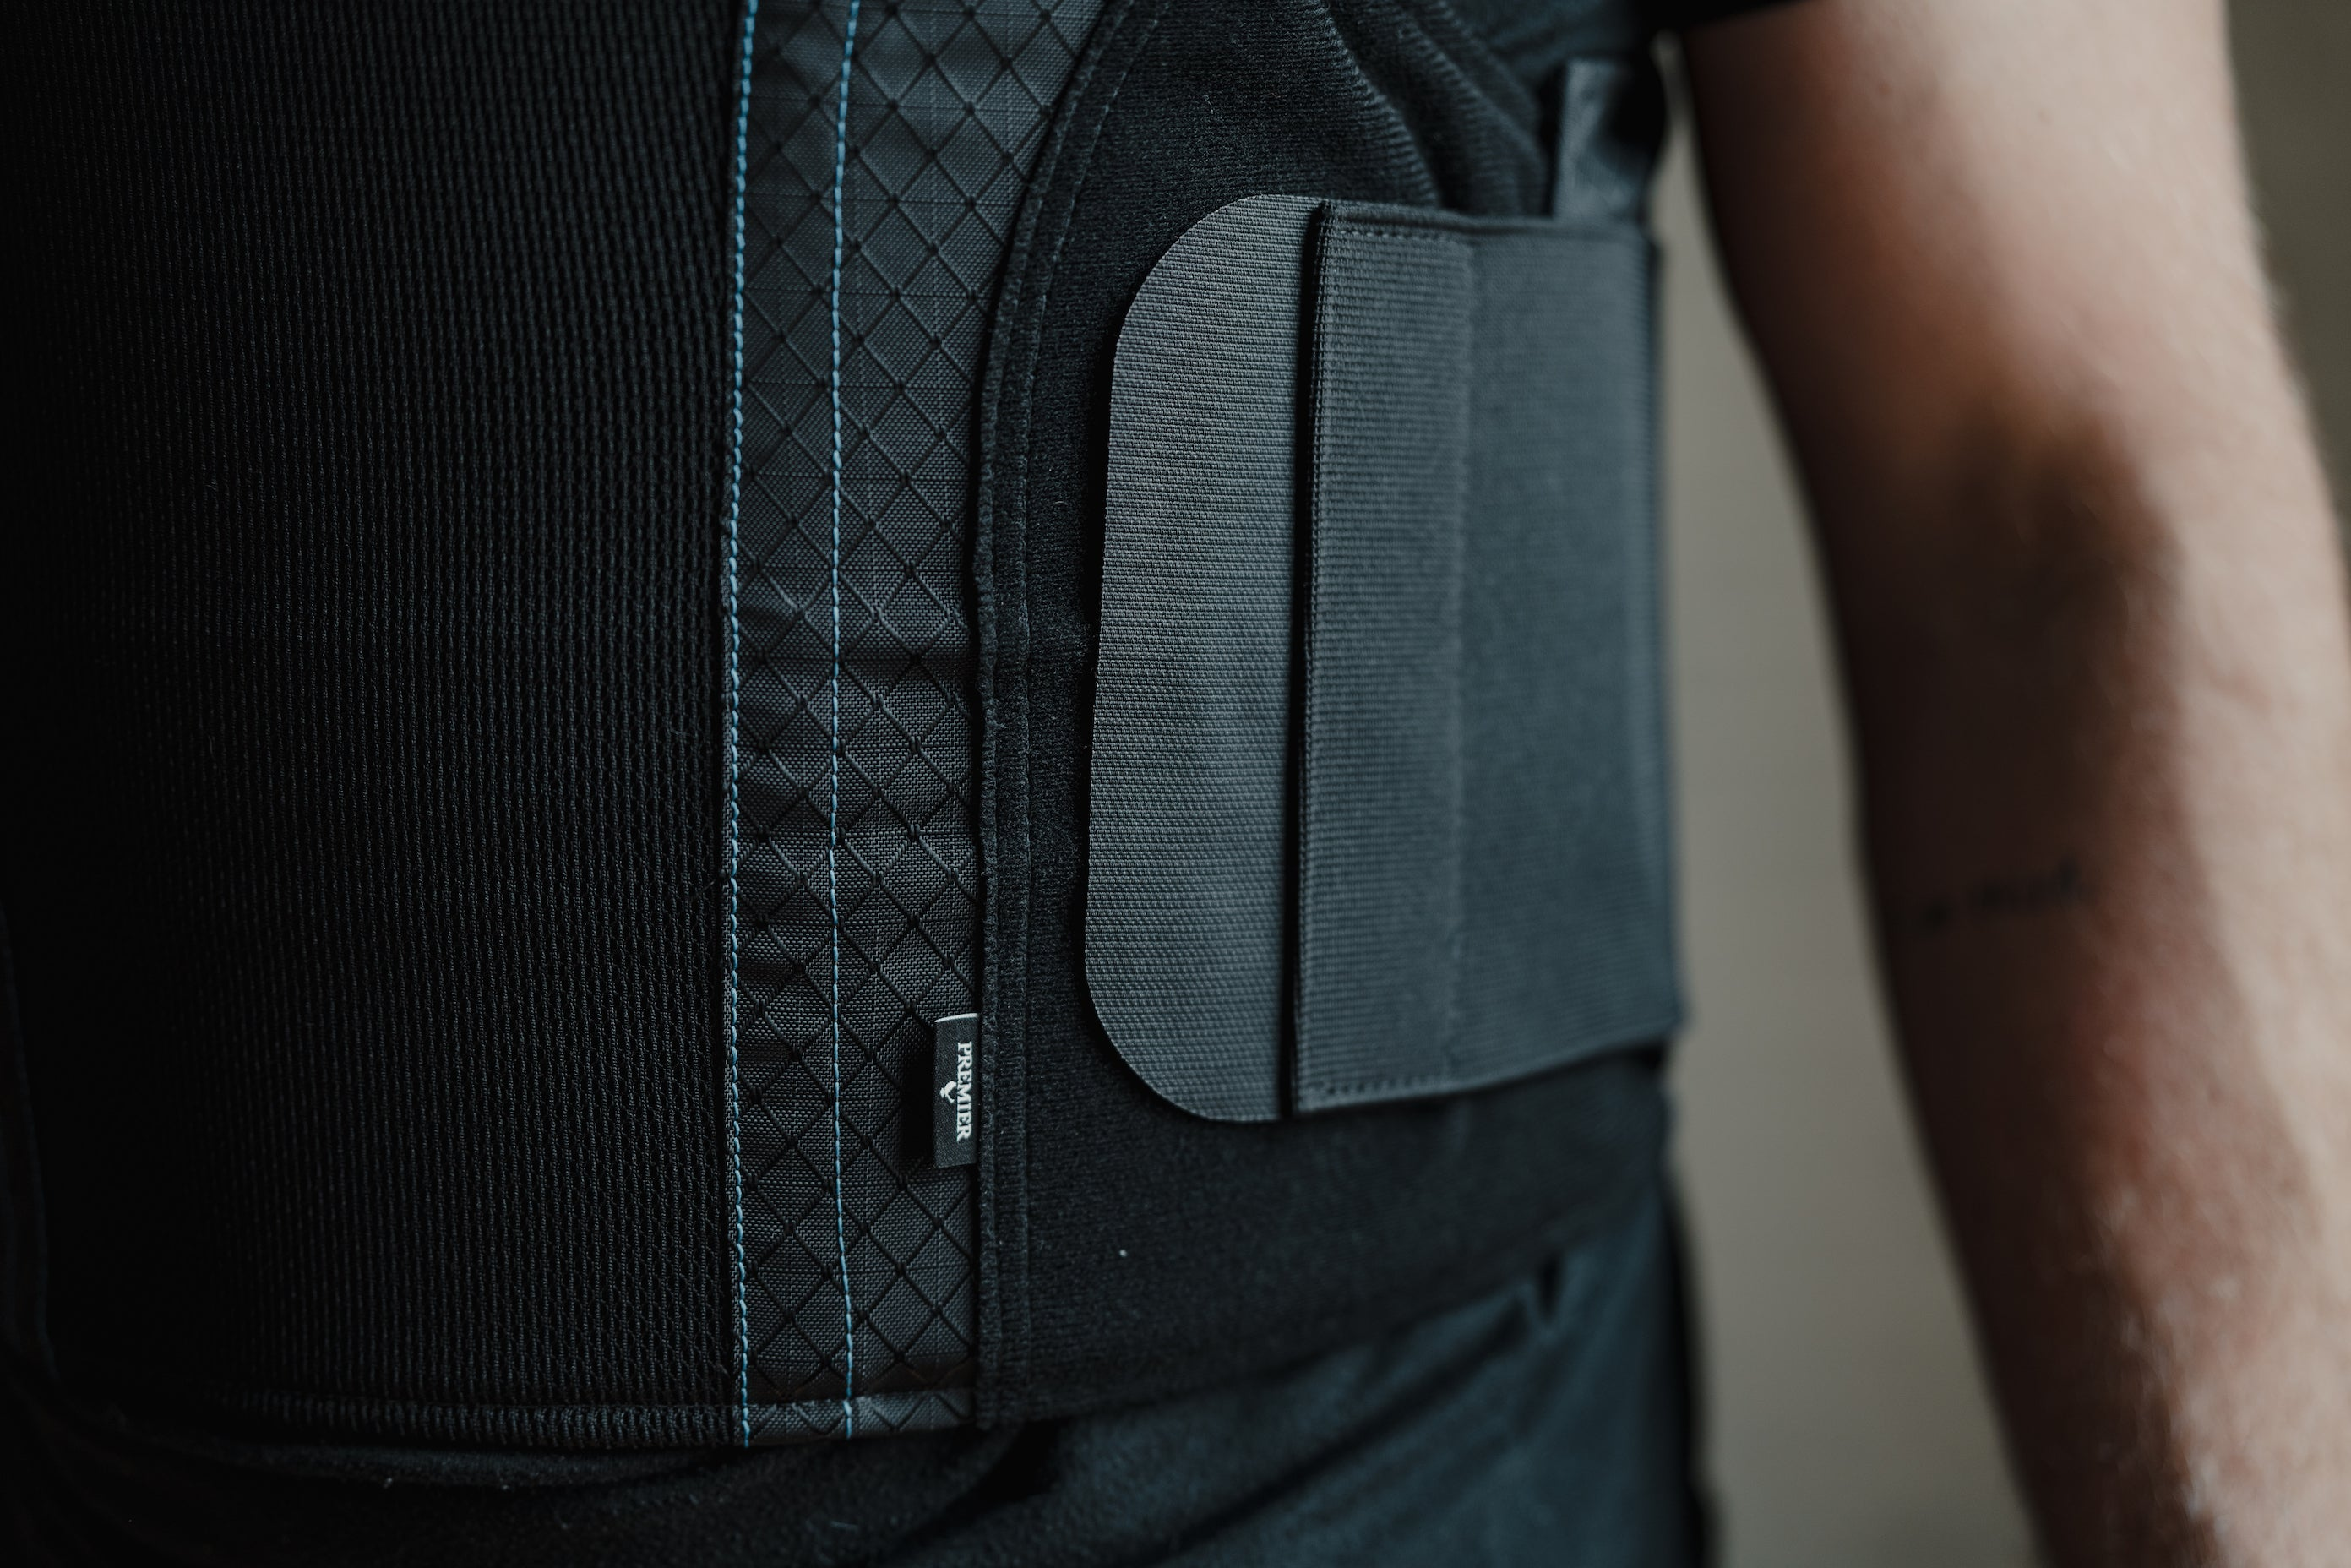 Comfortable side closure on the concealable armor vest